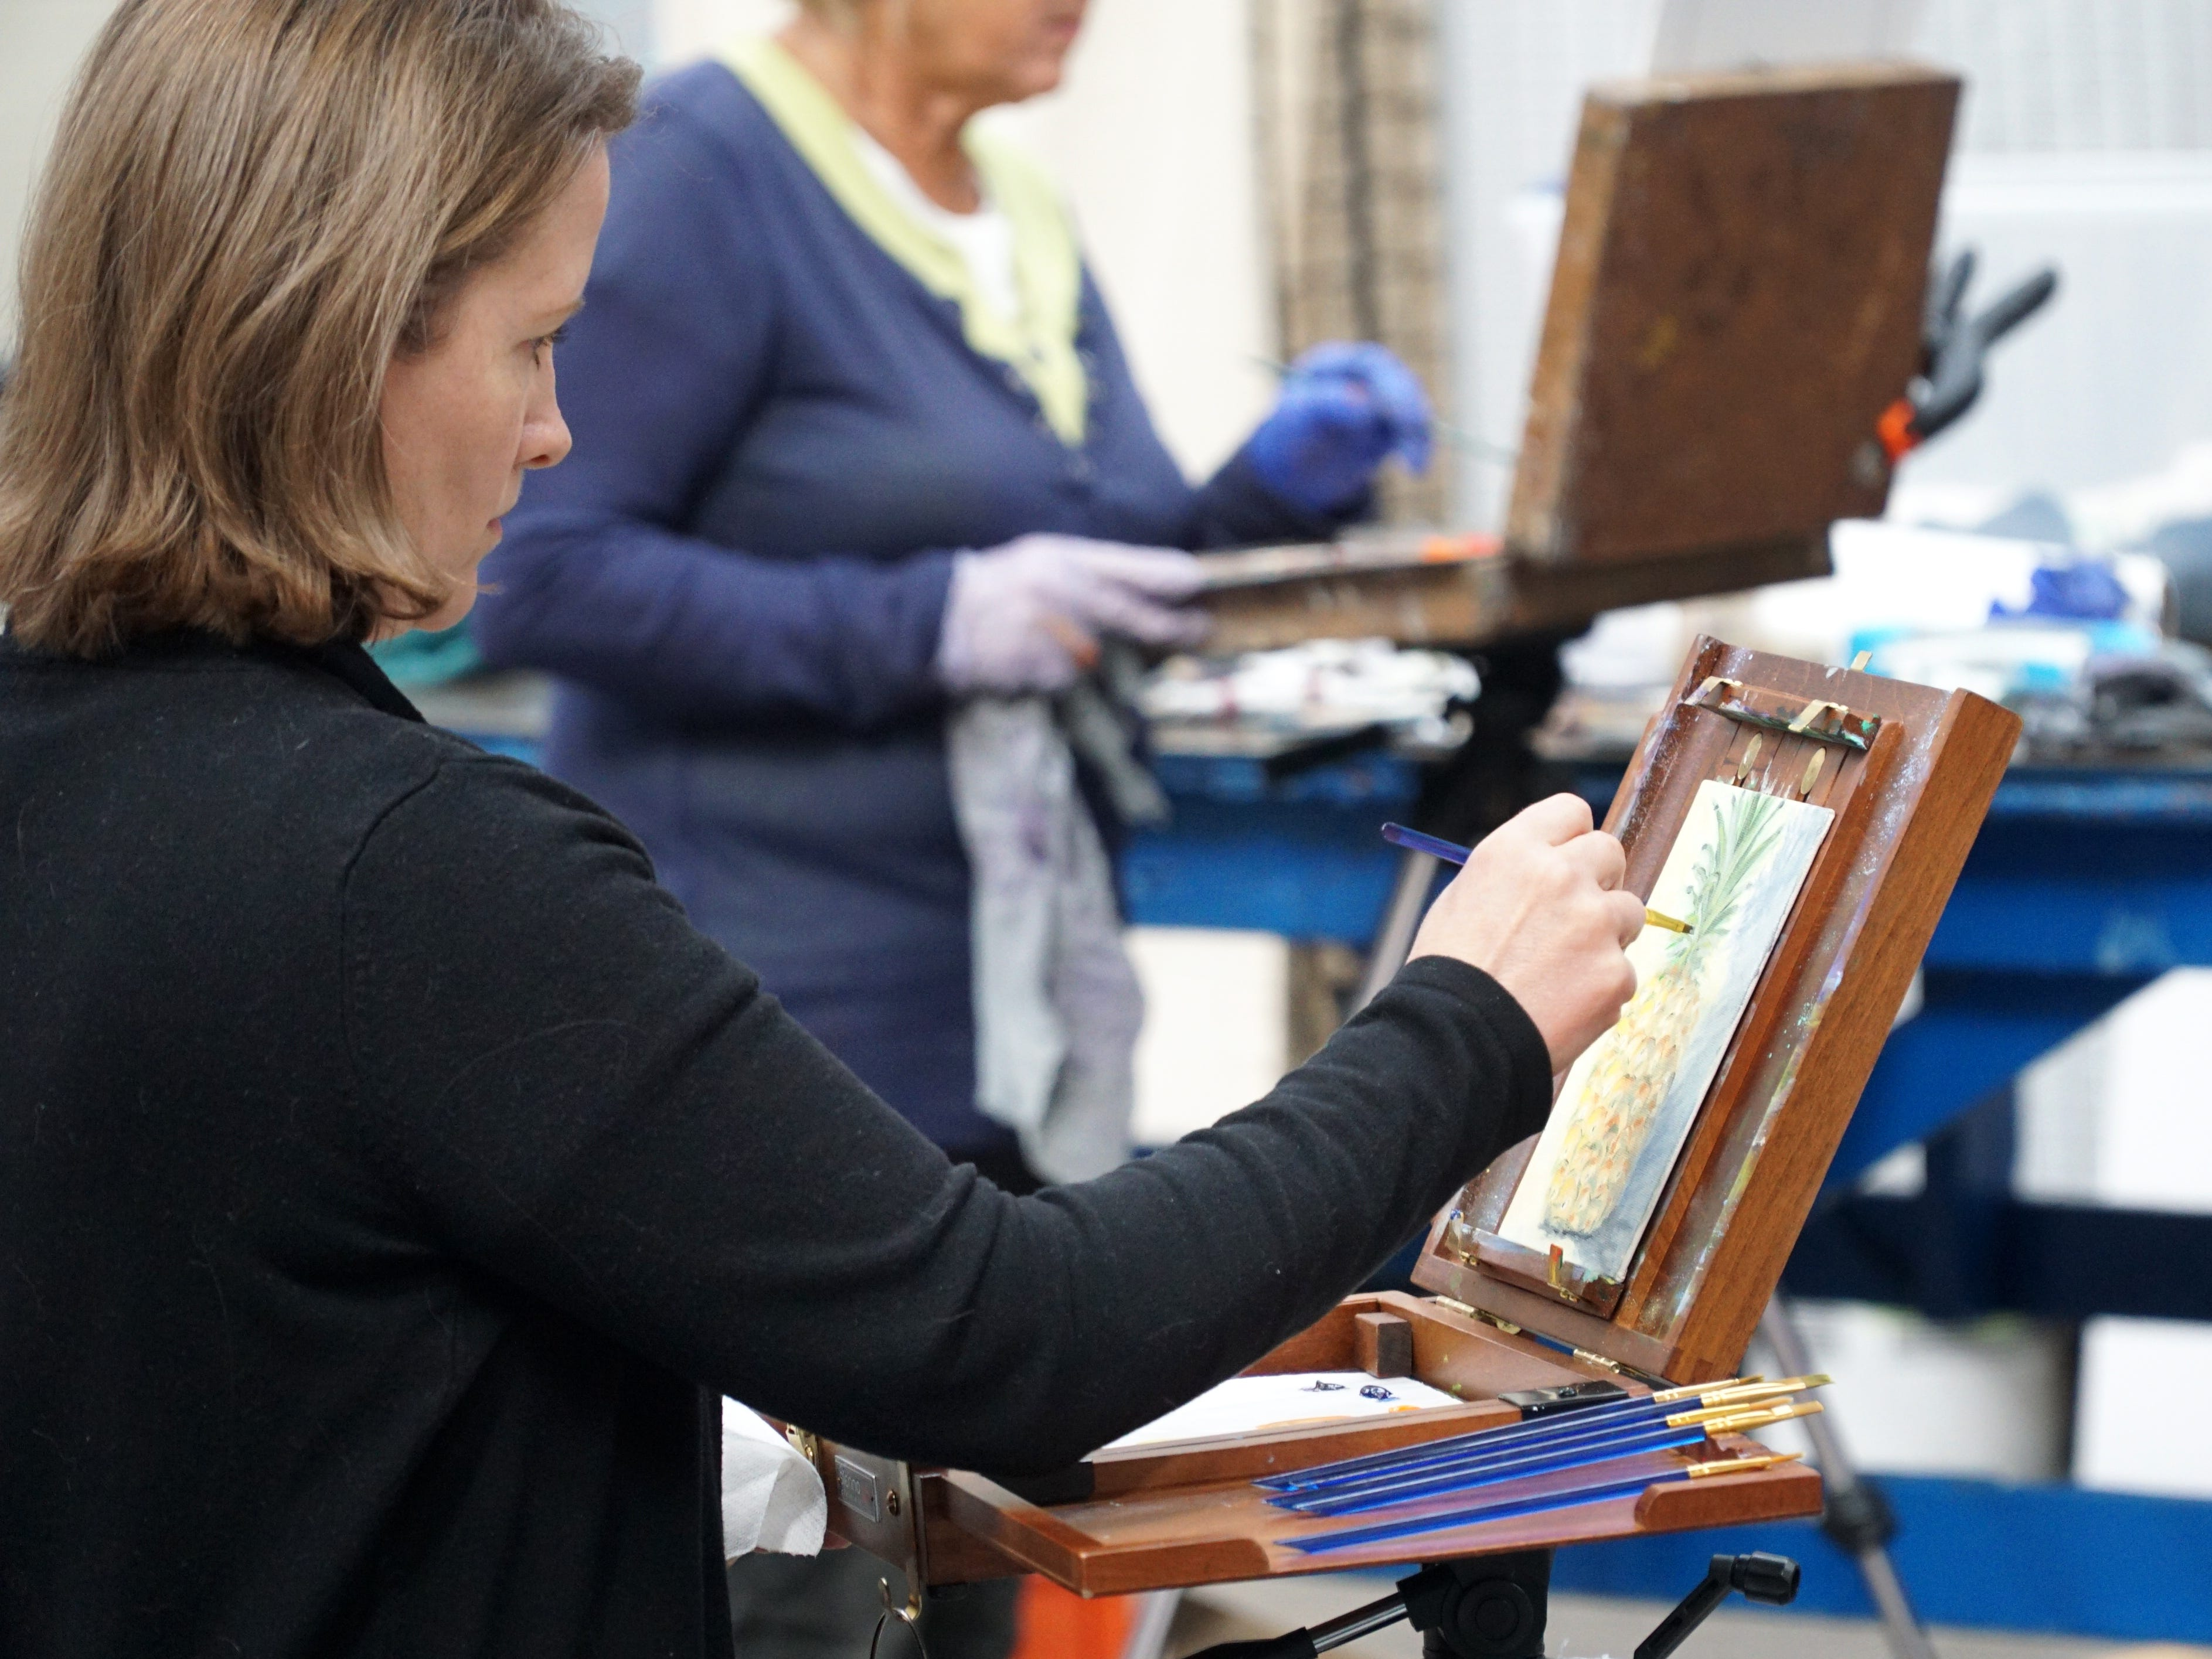 Tammy Ware, of Highland, works on her oil painting of a still life of a pineapple during an April 1 class at Milford's SHAC.